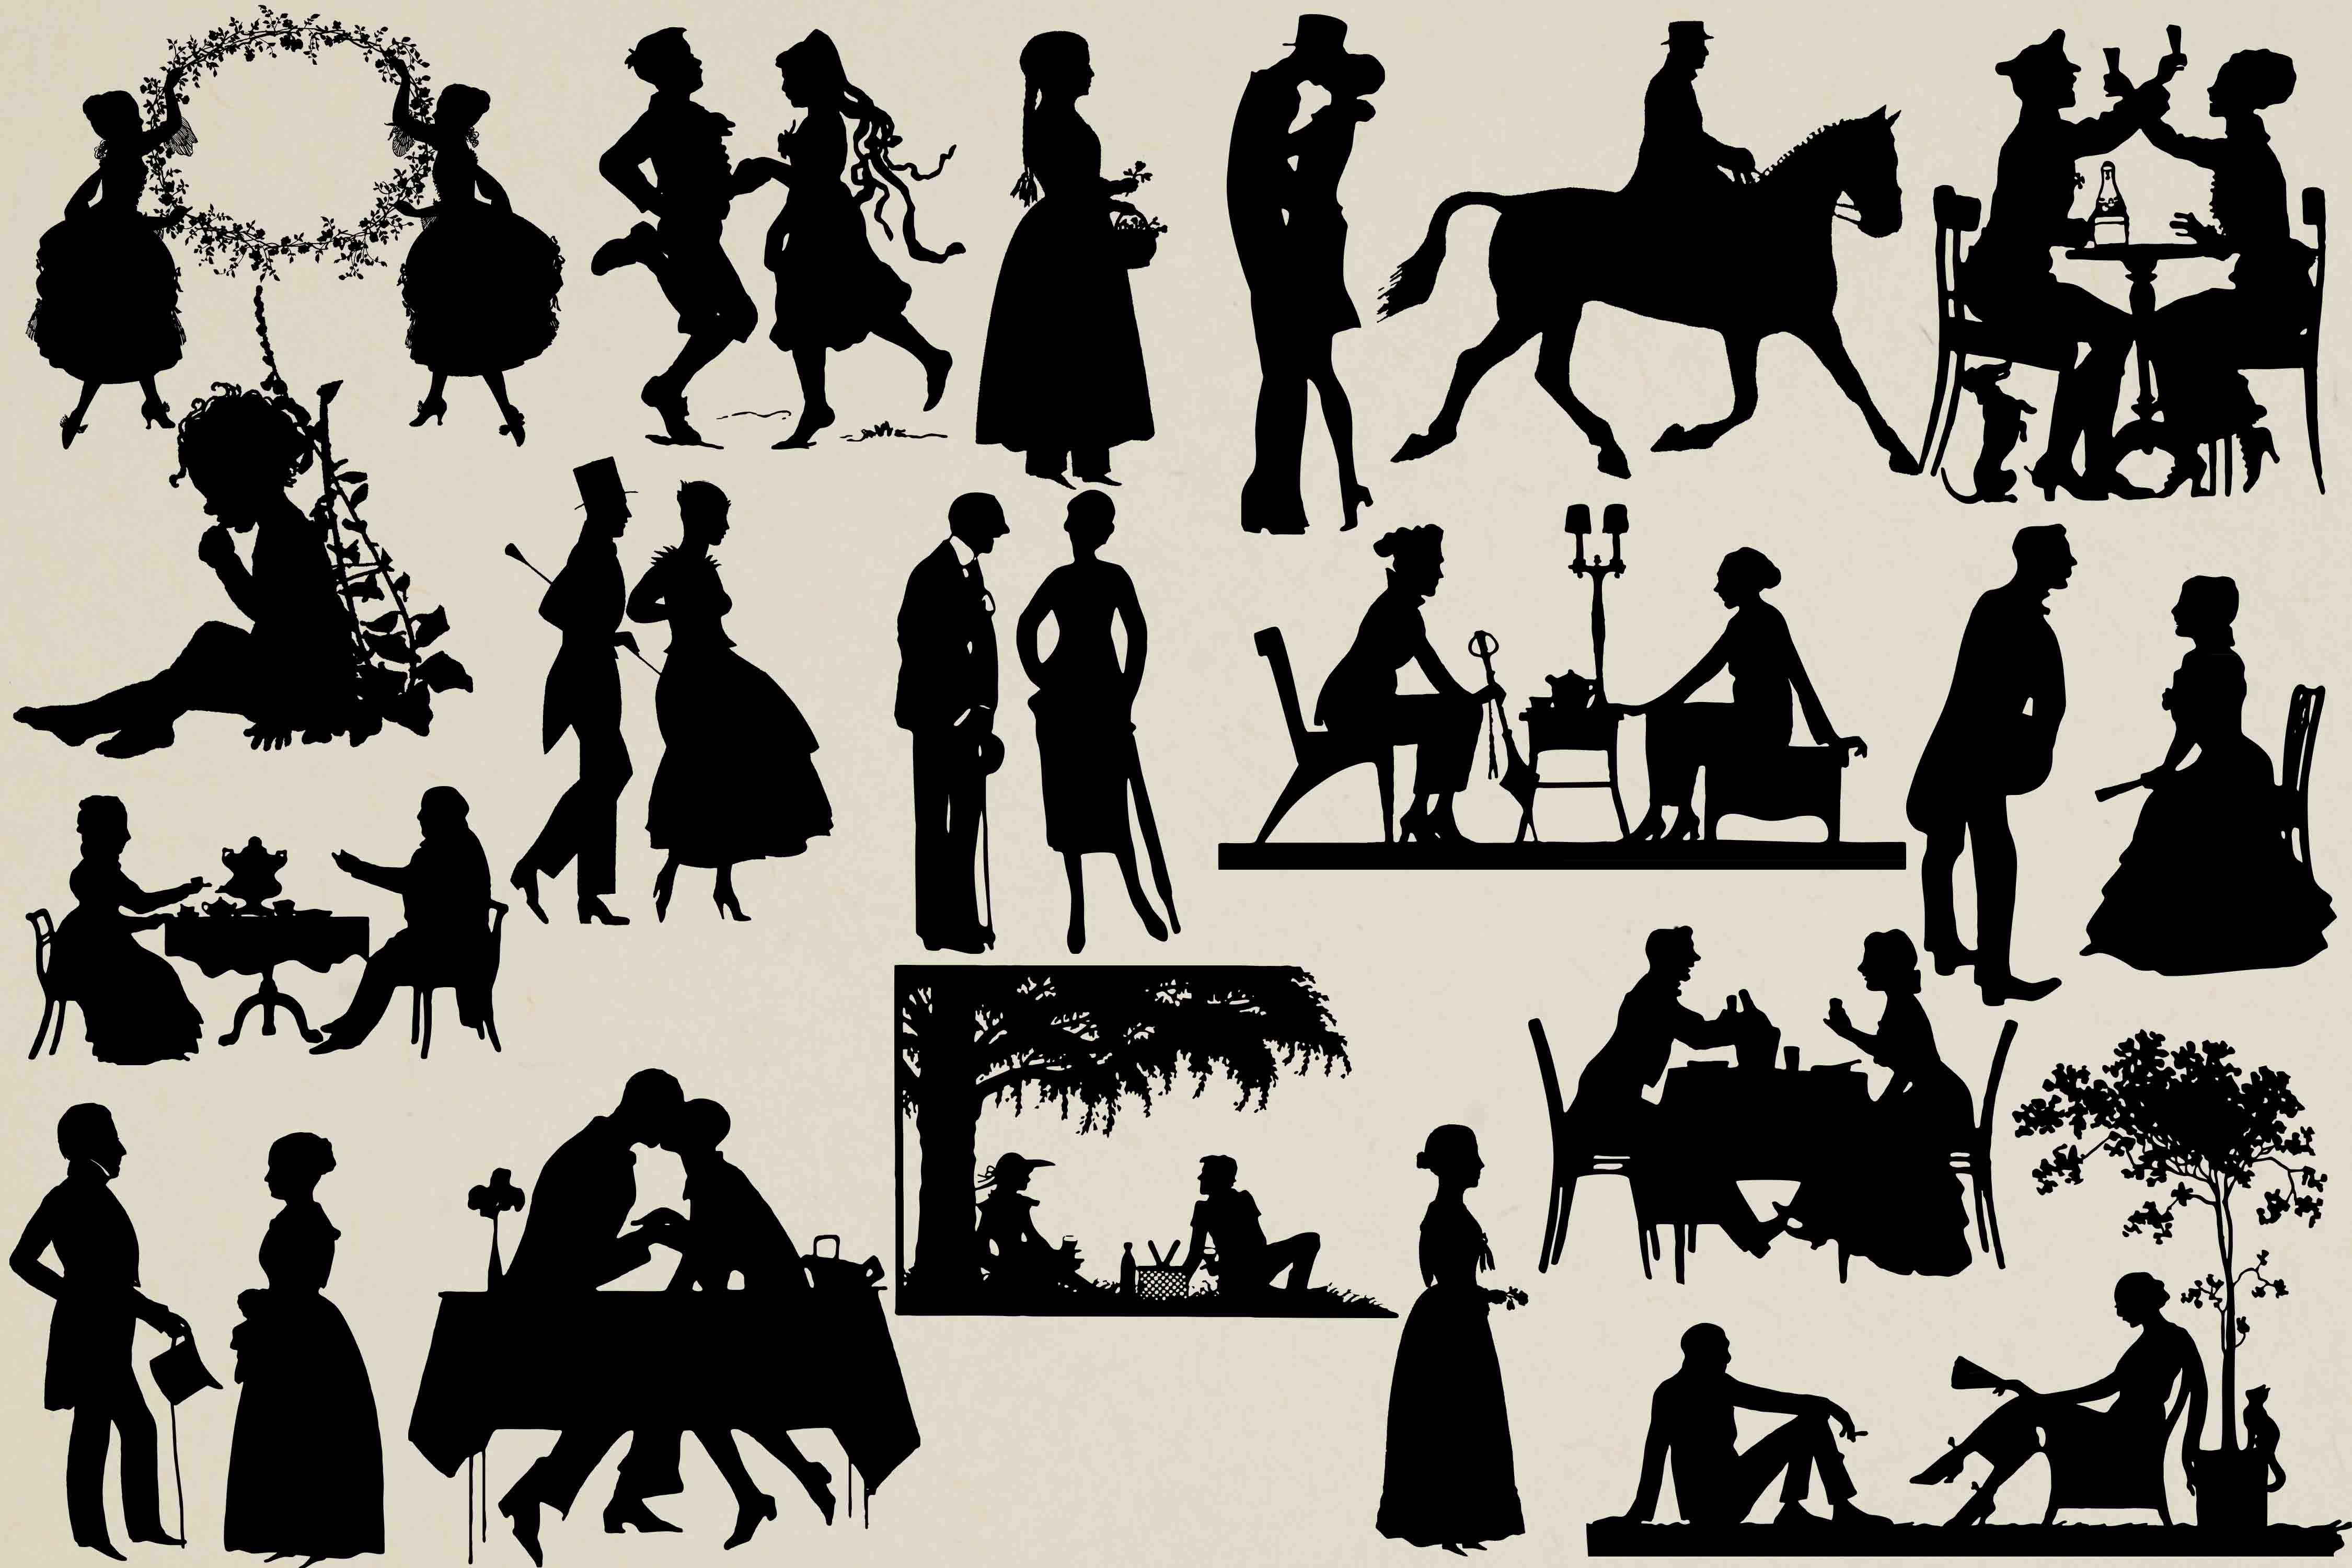 Download Free Vintage Silhouettes Graphic By Retrowalldecor Creative Fabrica for Cricut Explore, Silhouette and other cutting machines.